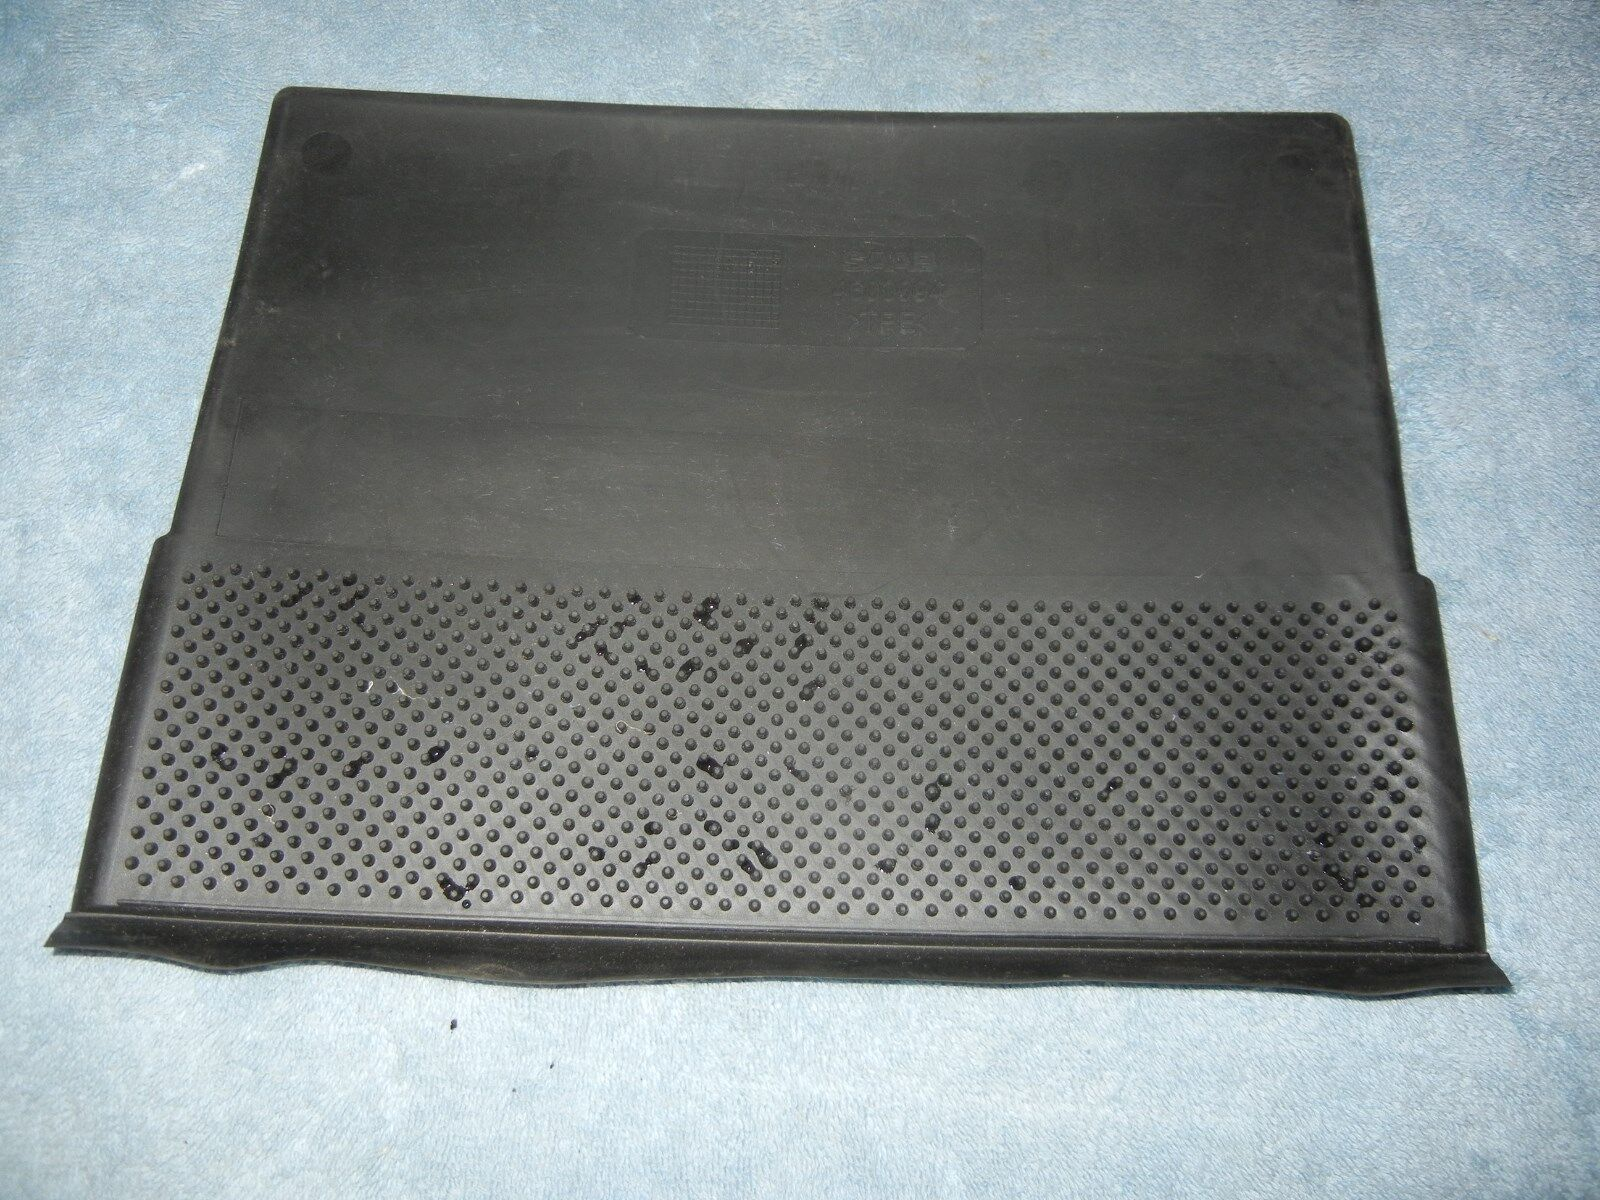 Used Saab Glove Boxes For Sale 900 Se Turbo Electric Seats Partrequestcom 4600094 Manufactured By